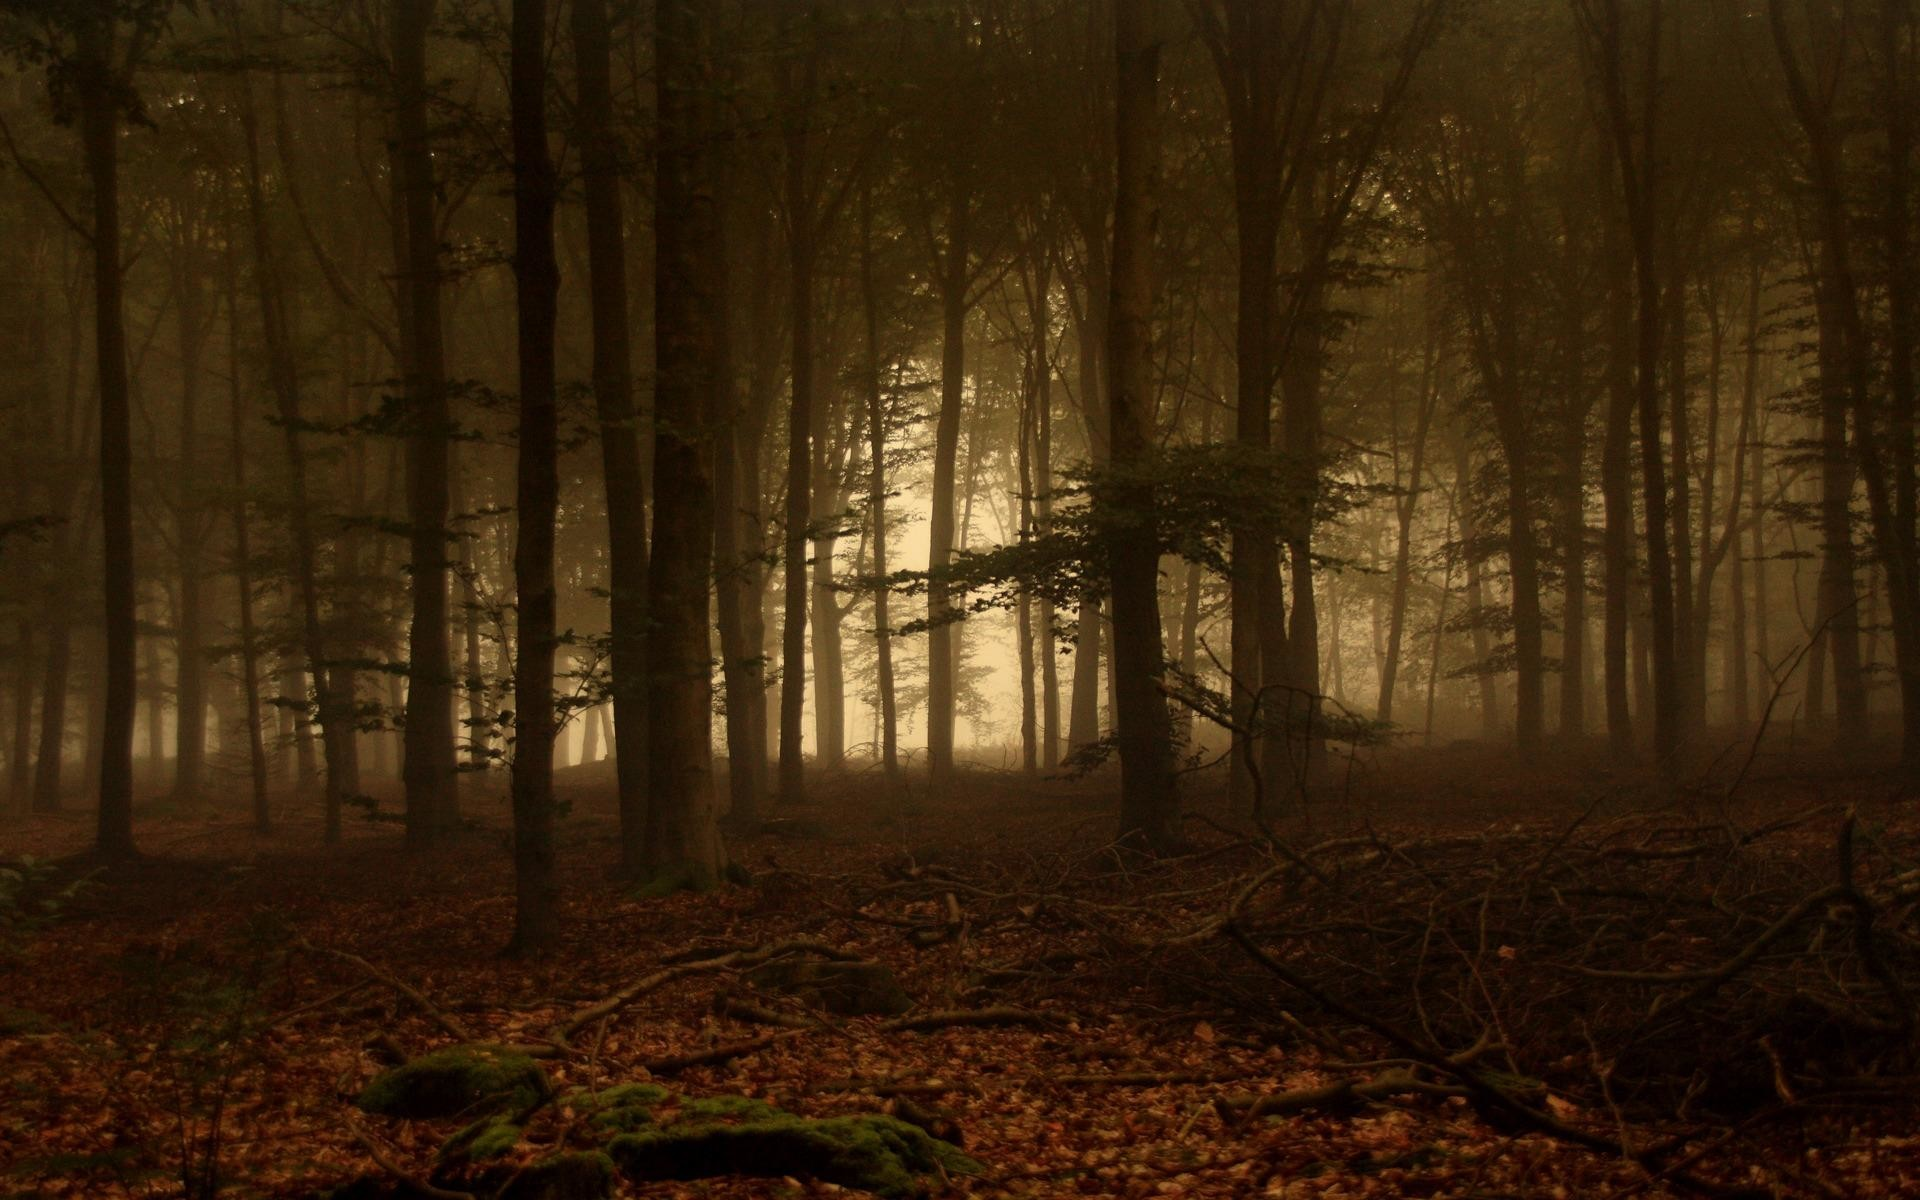 wallpaper.wiki-HD-Foggy-Forest-Backgrounds-Download-PIC-WPB004349